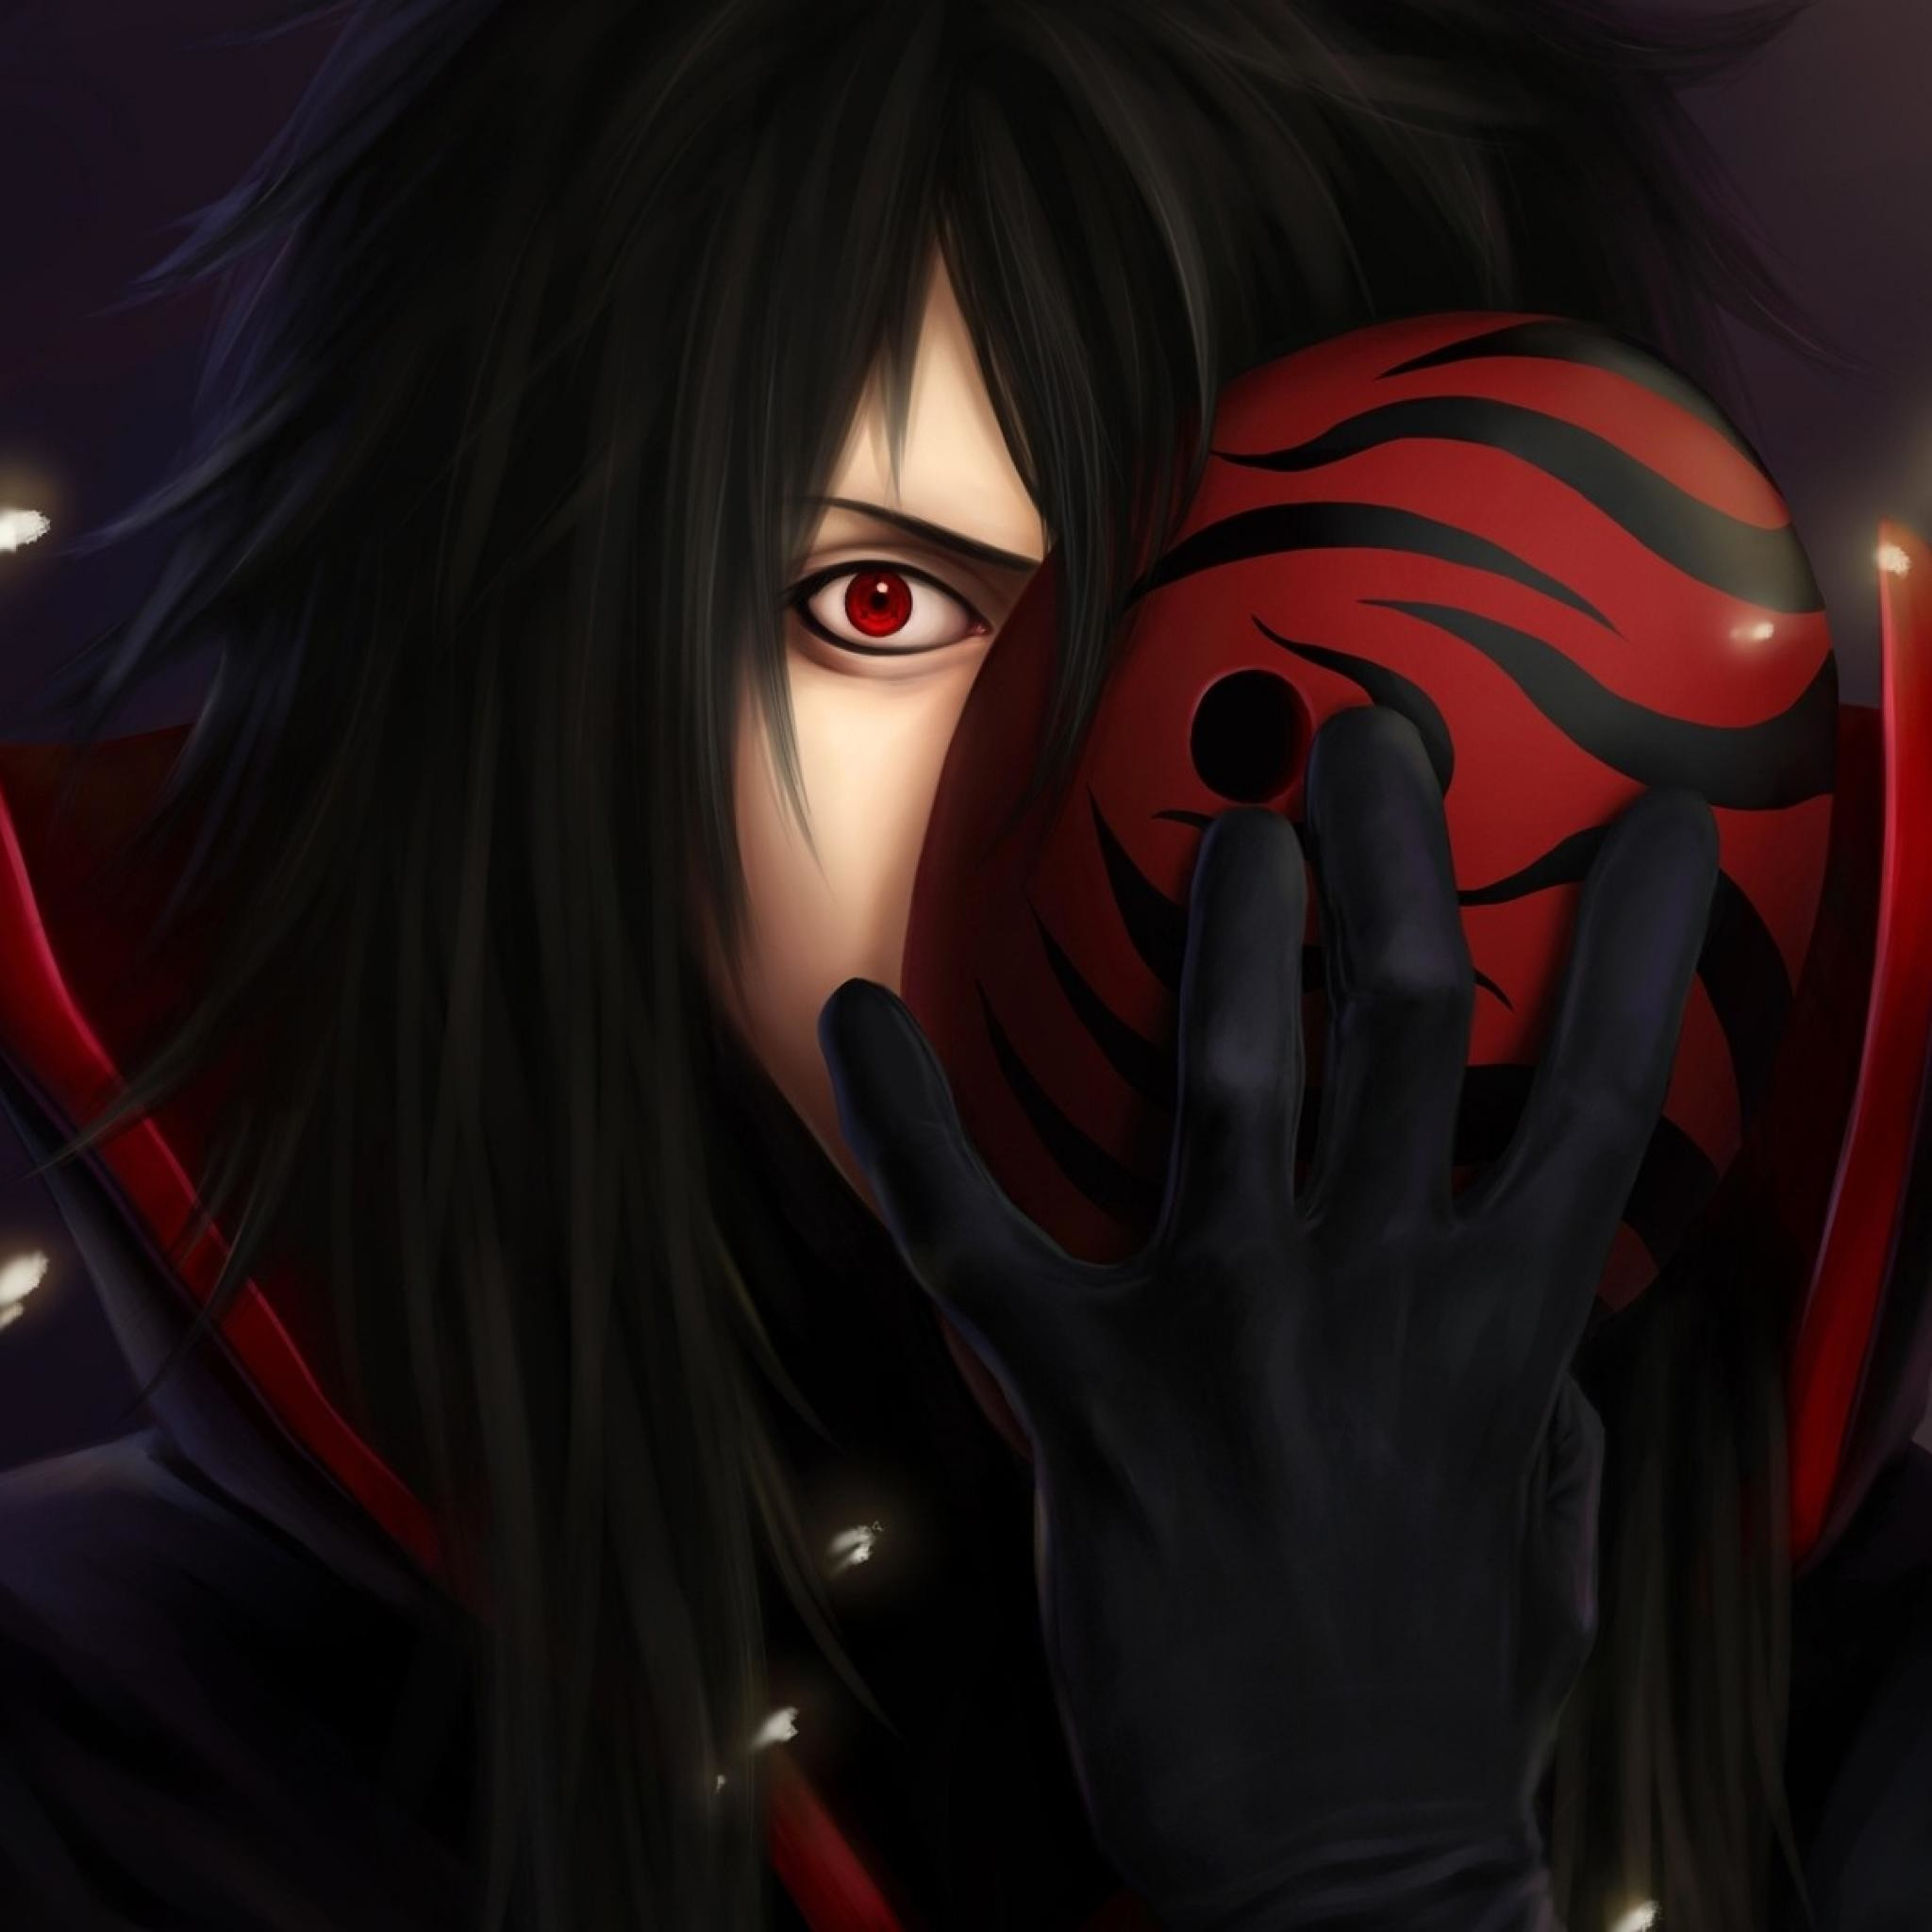 Res: 2048x2048, Wallpapers For > Madara Uchiha Sharingan Wallpaper